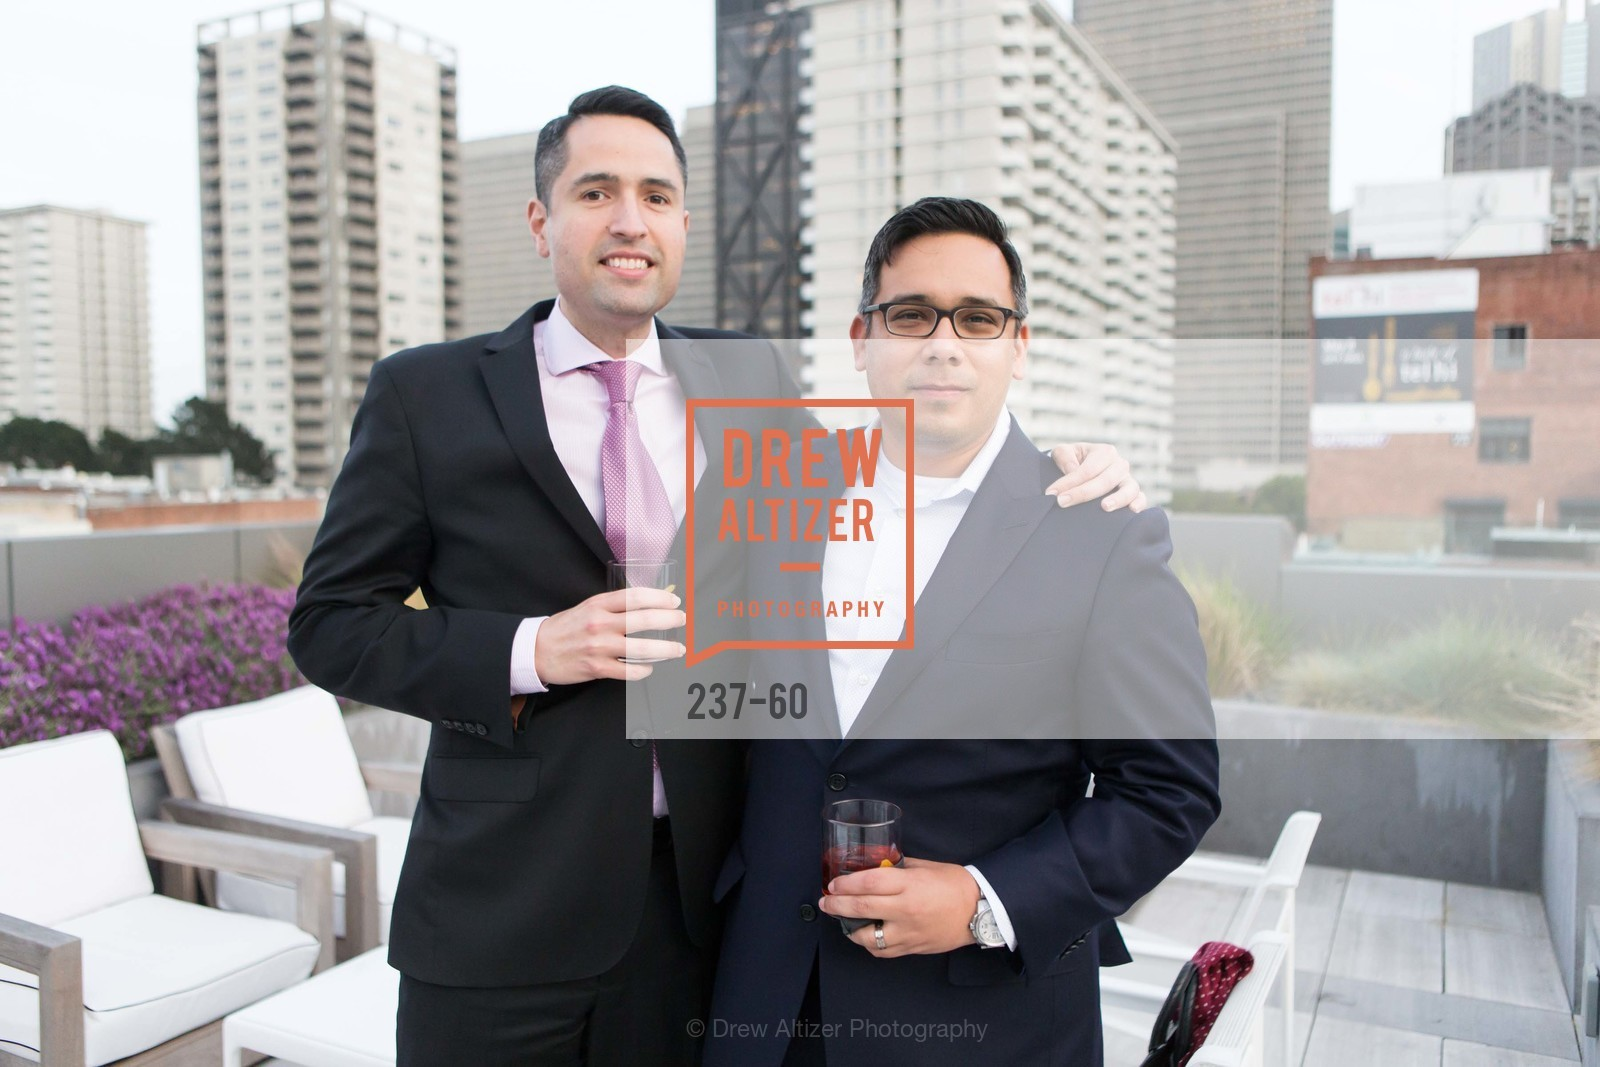 Aaron Barrera, Gonzalo Martinez, MR PORTER Celebrate The San Francisco Issue of The Journal, The Battery Rooftop - The Battery SF, April 23rd, 2015,Drew Altizer, Drew Altizer Photography, full-service event agency, private events, San Francisco photographer, photographer California